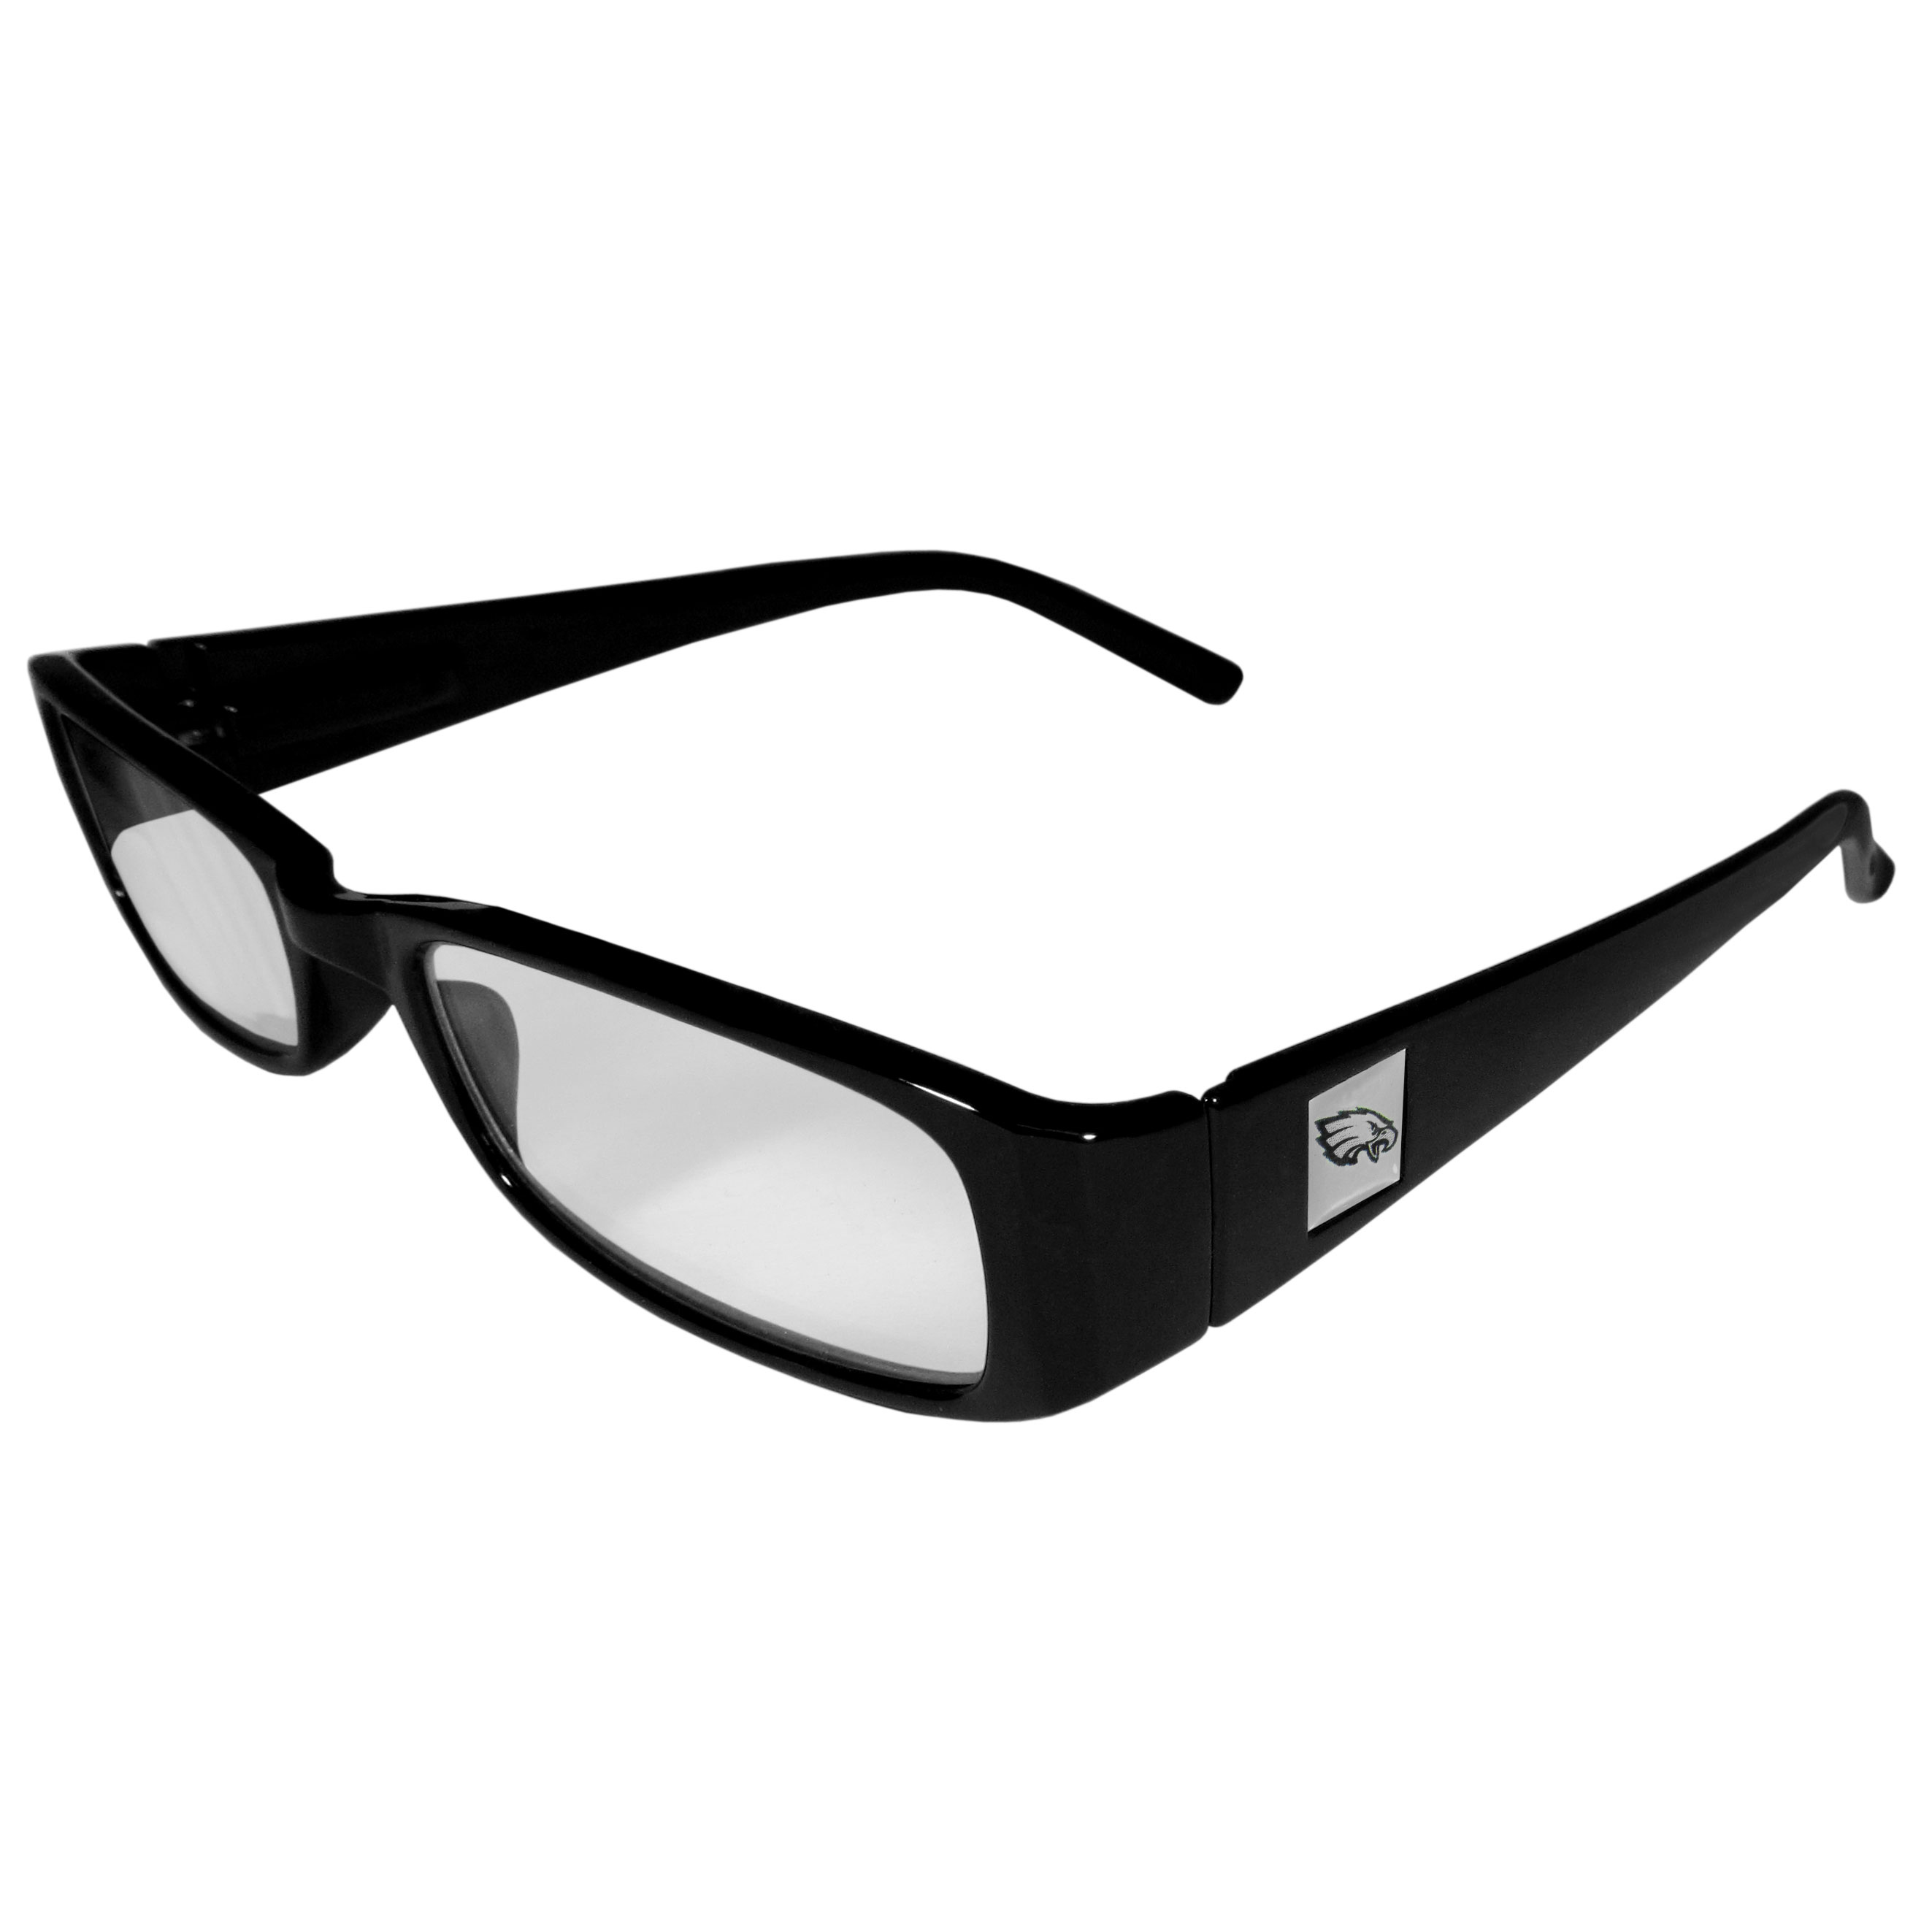 Philadelphia Eagles Black Reading Glasses +1.25 - Our Philadelphia Eagles reading glasses are 5.25 inches wide and feature the team logo on each arm. Magnification Power 1.25